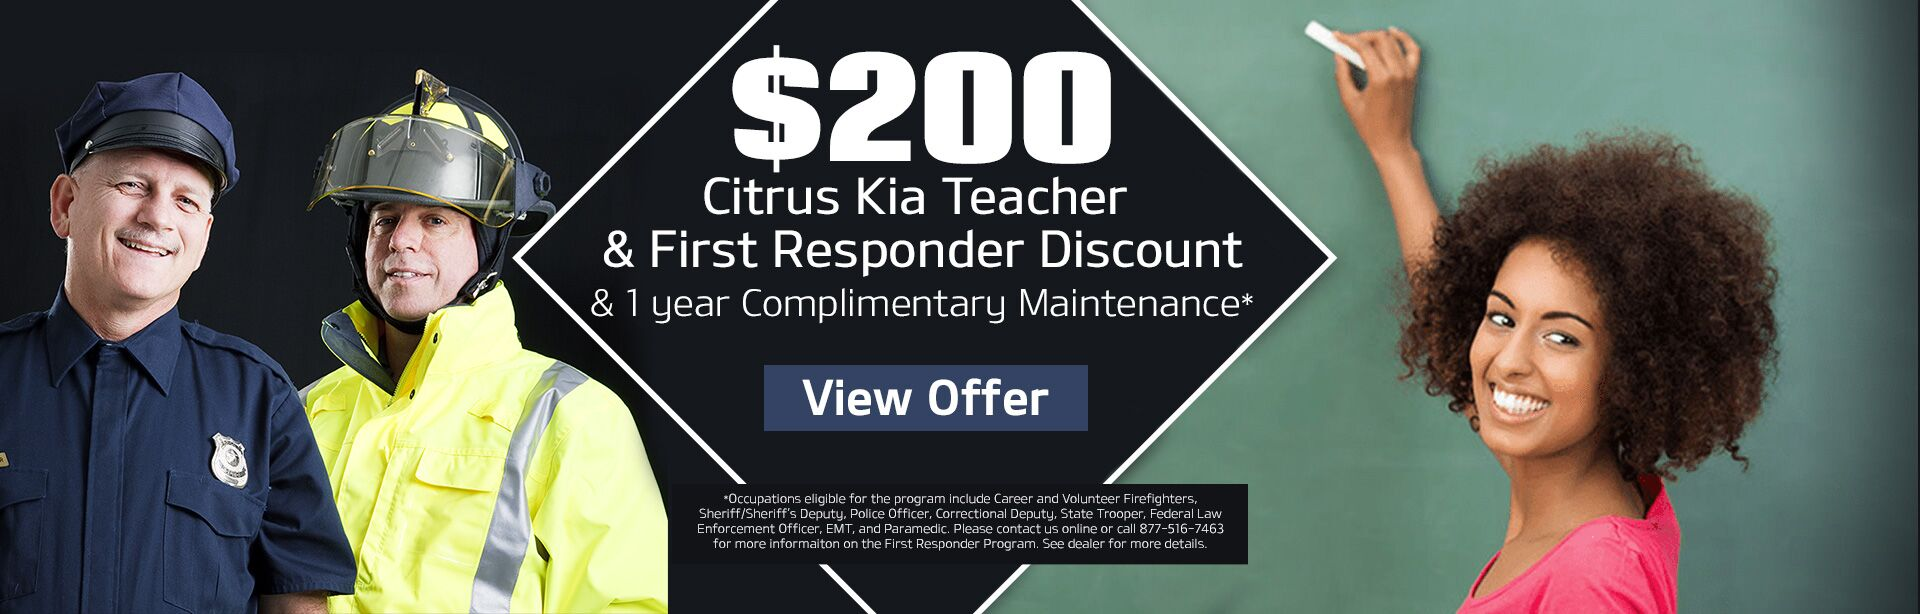 Teacher & First Responder Discount